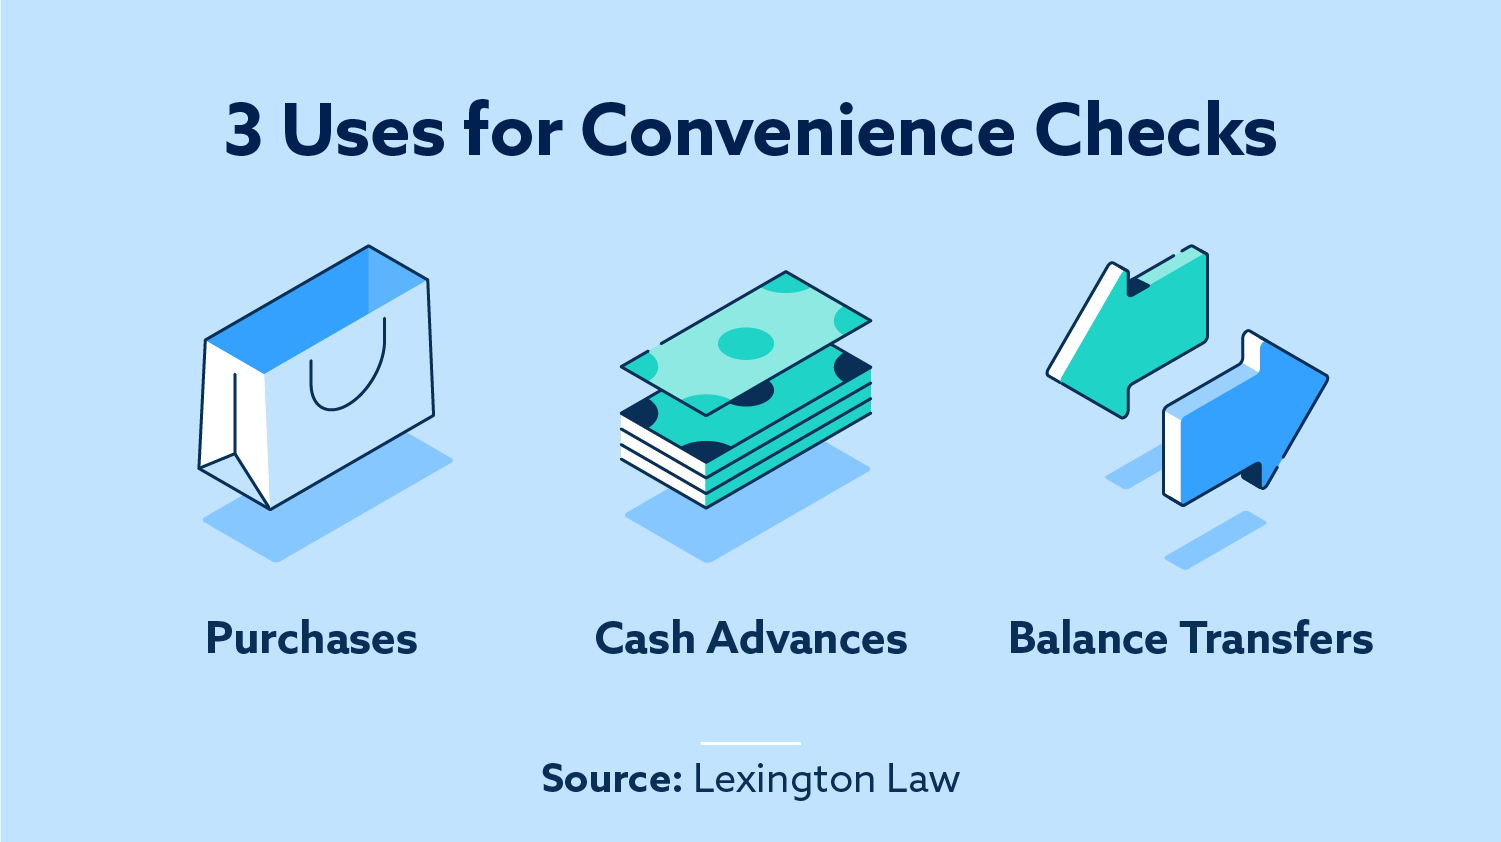 3 uses for convenience checks